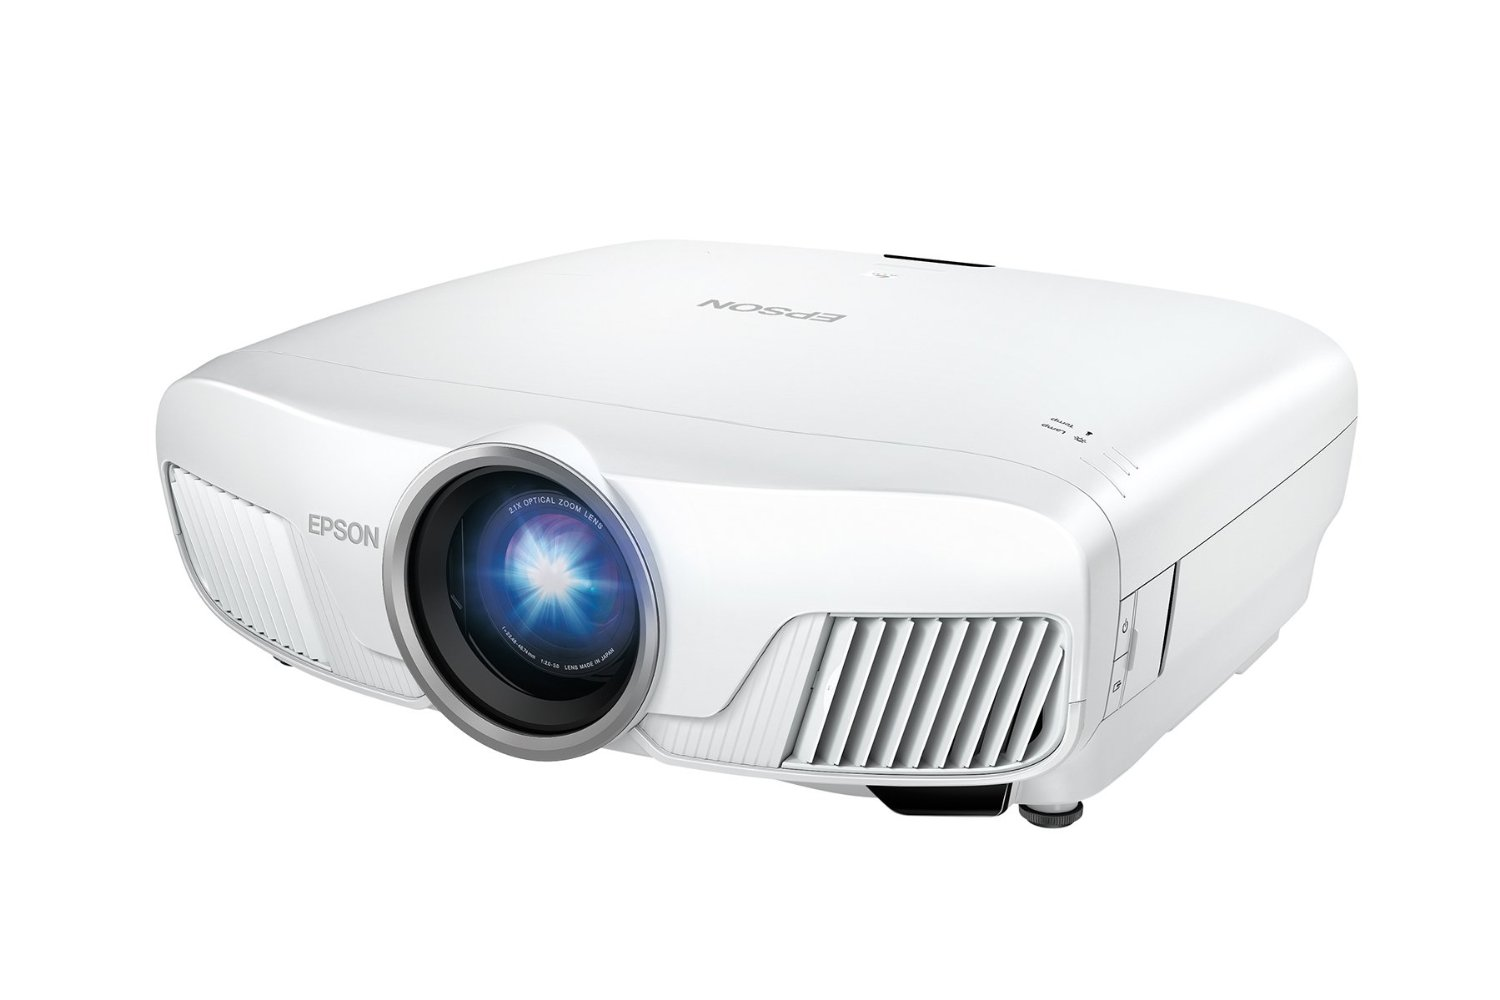 Click here to buy Epson Home Cinema 5040UB 3LCD Home Theater Projector with 4K Enhancement, HDR and Wide Color Gamut by Epson.